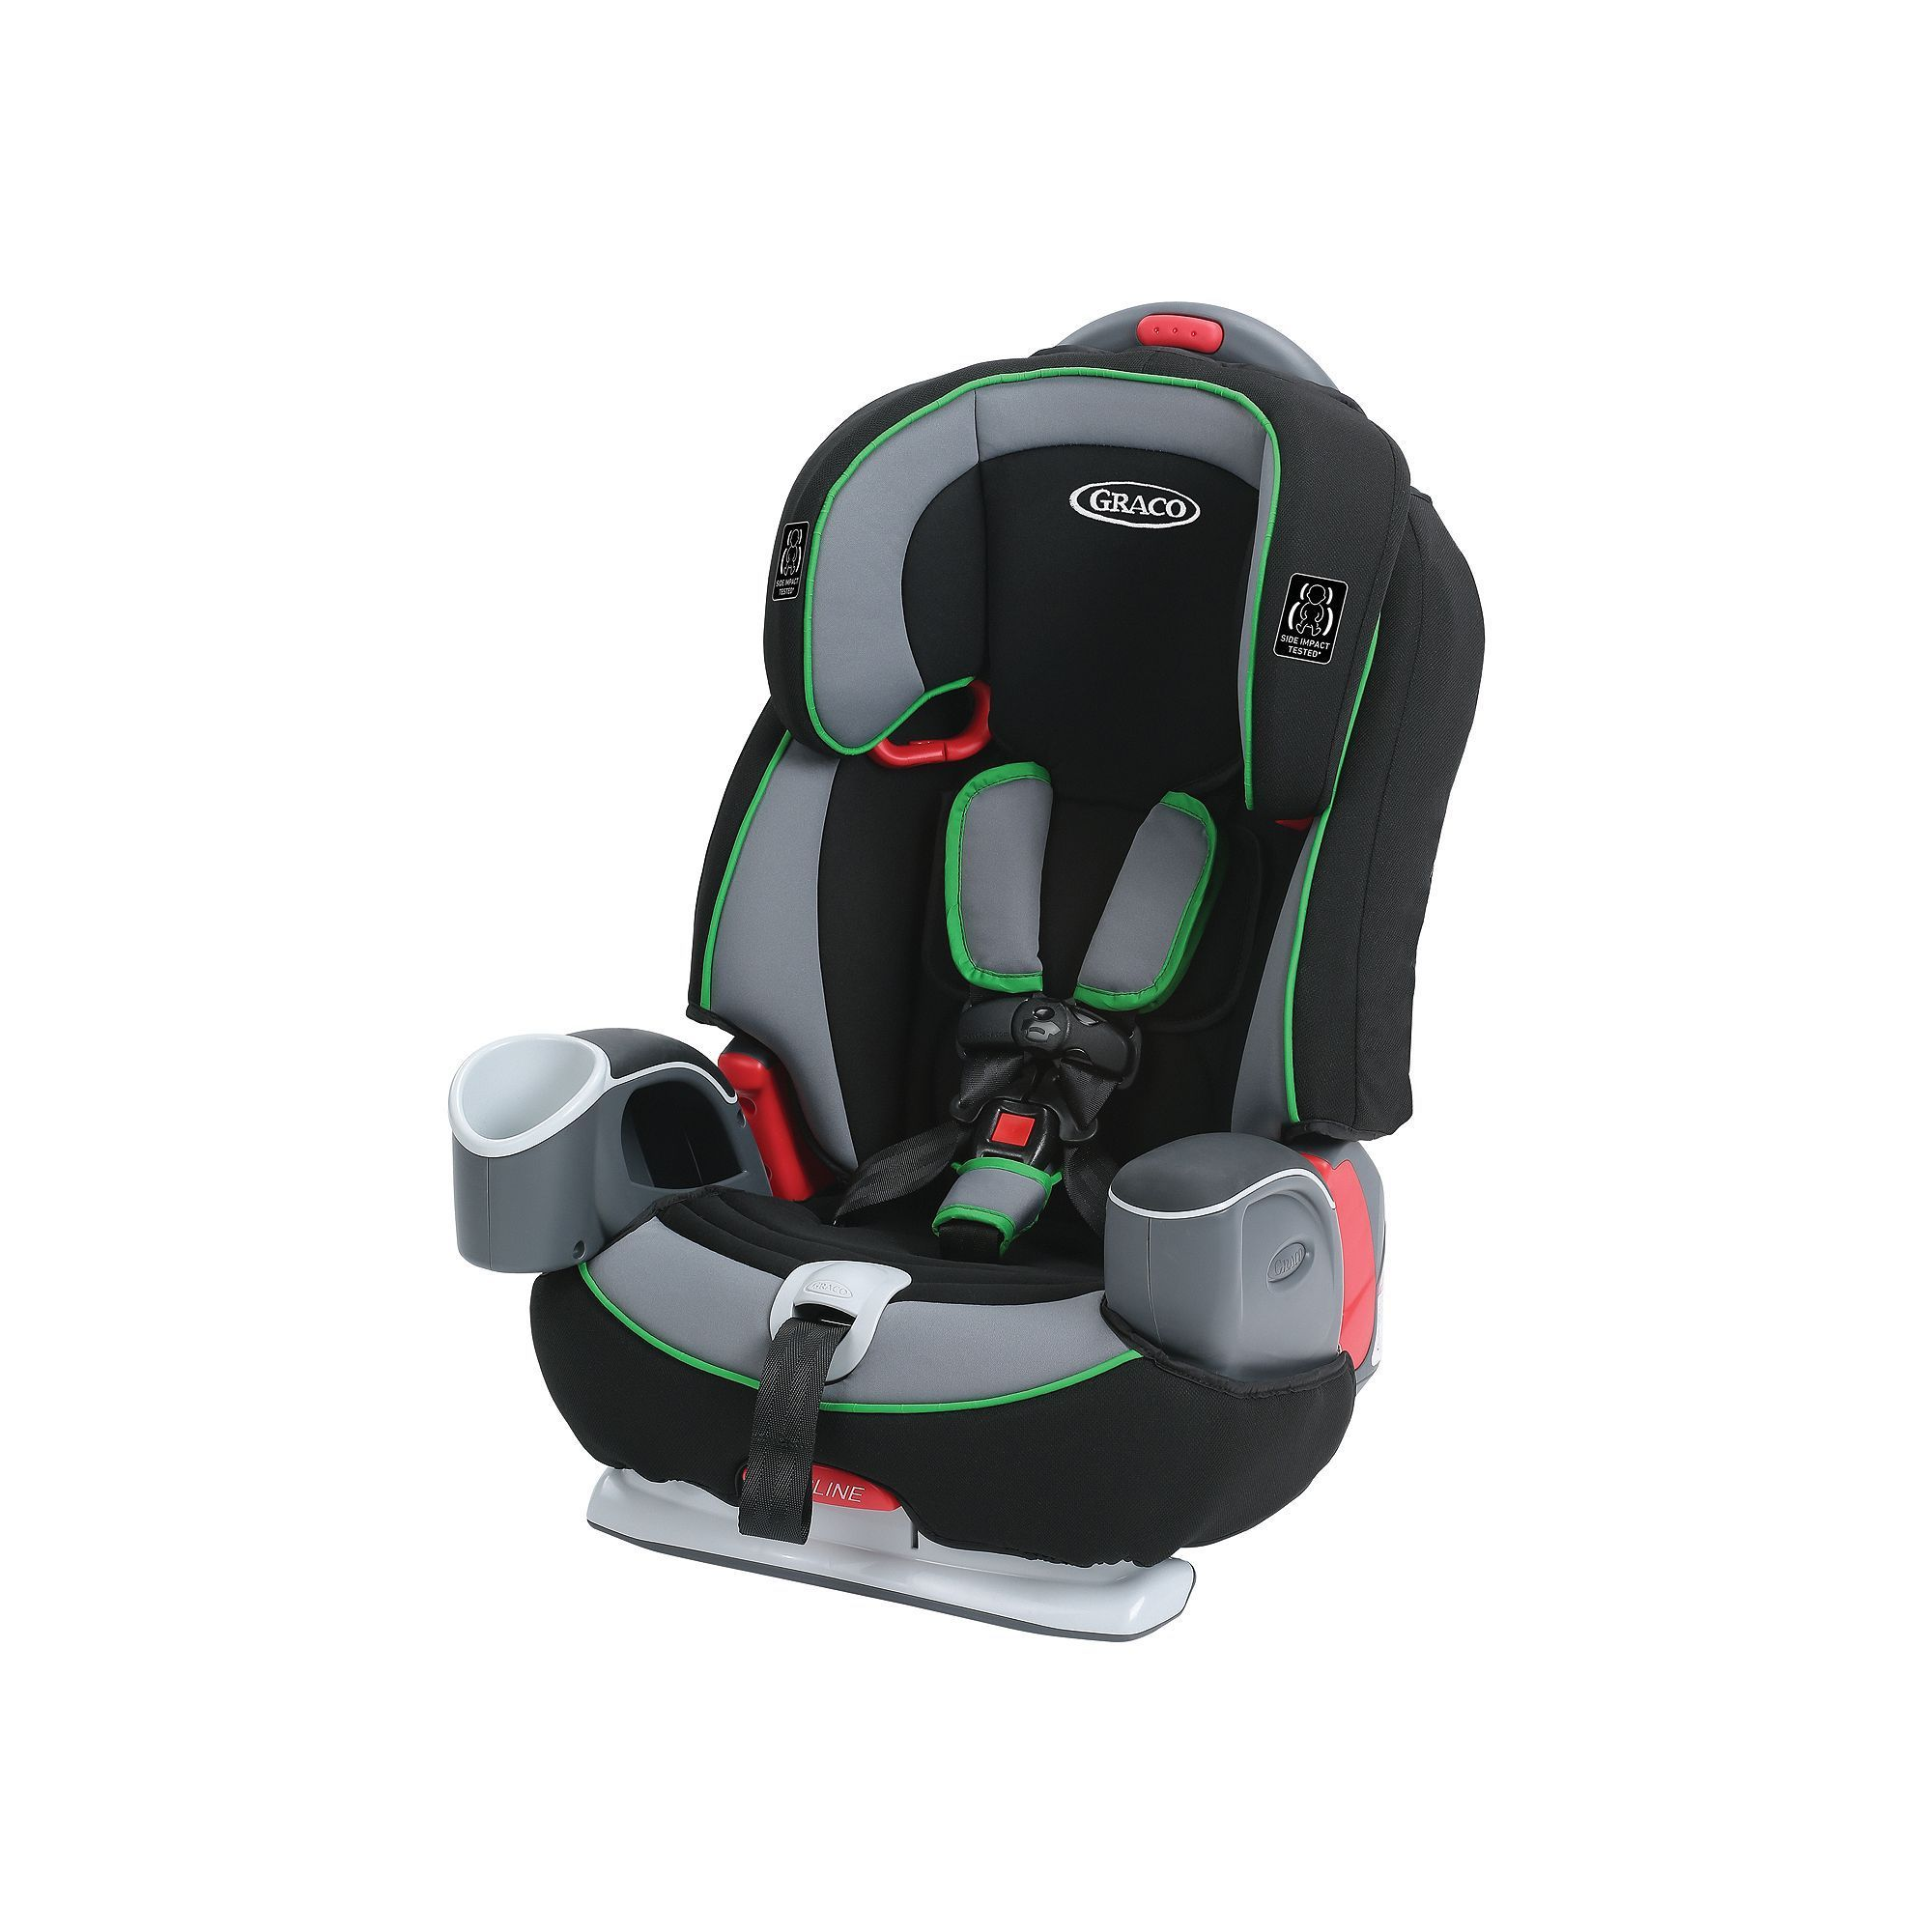 Graco Nautilus 65 3 In 1 Harness Booster Car Seat Green